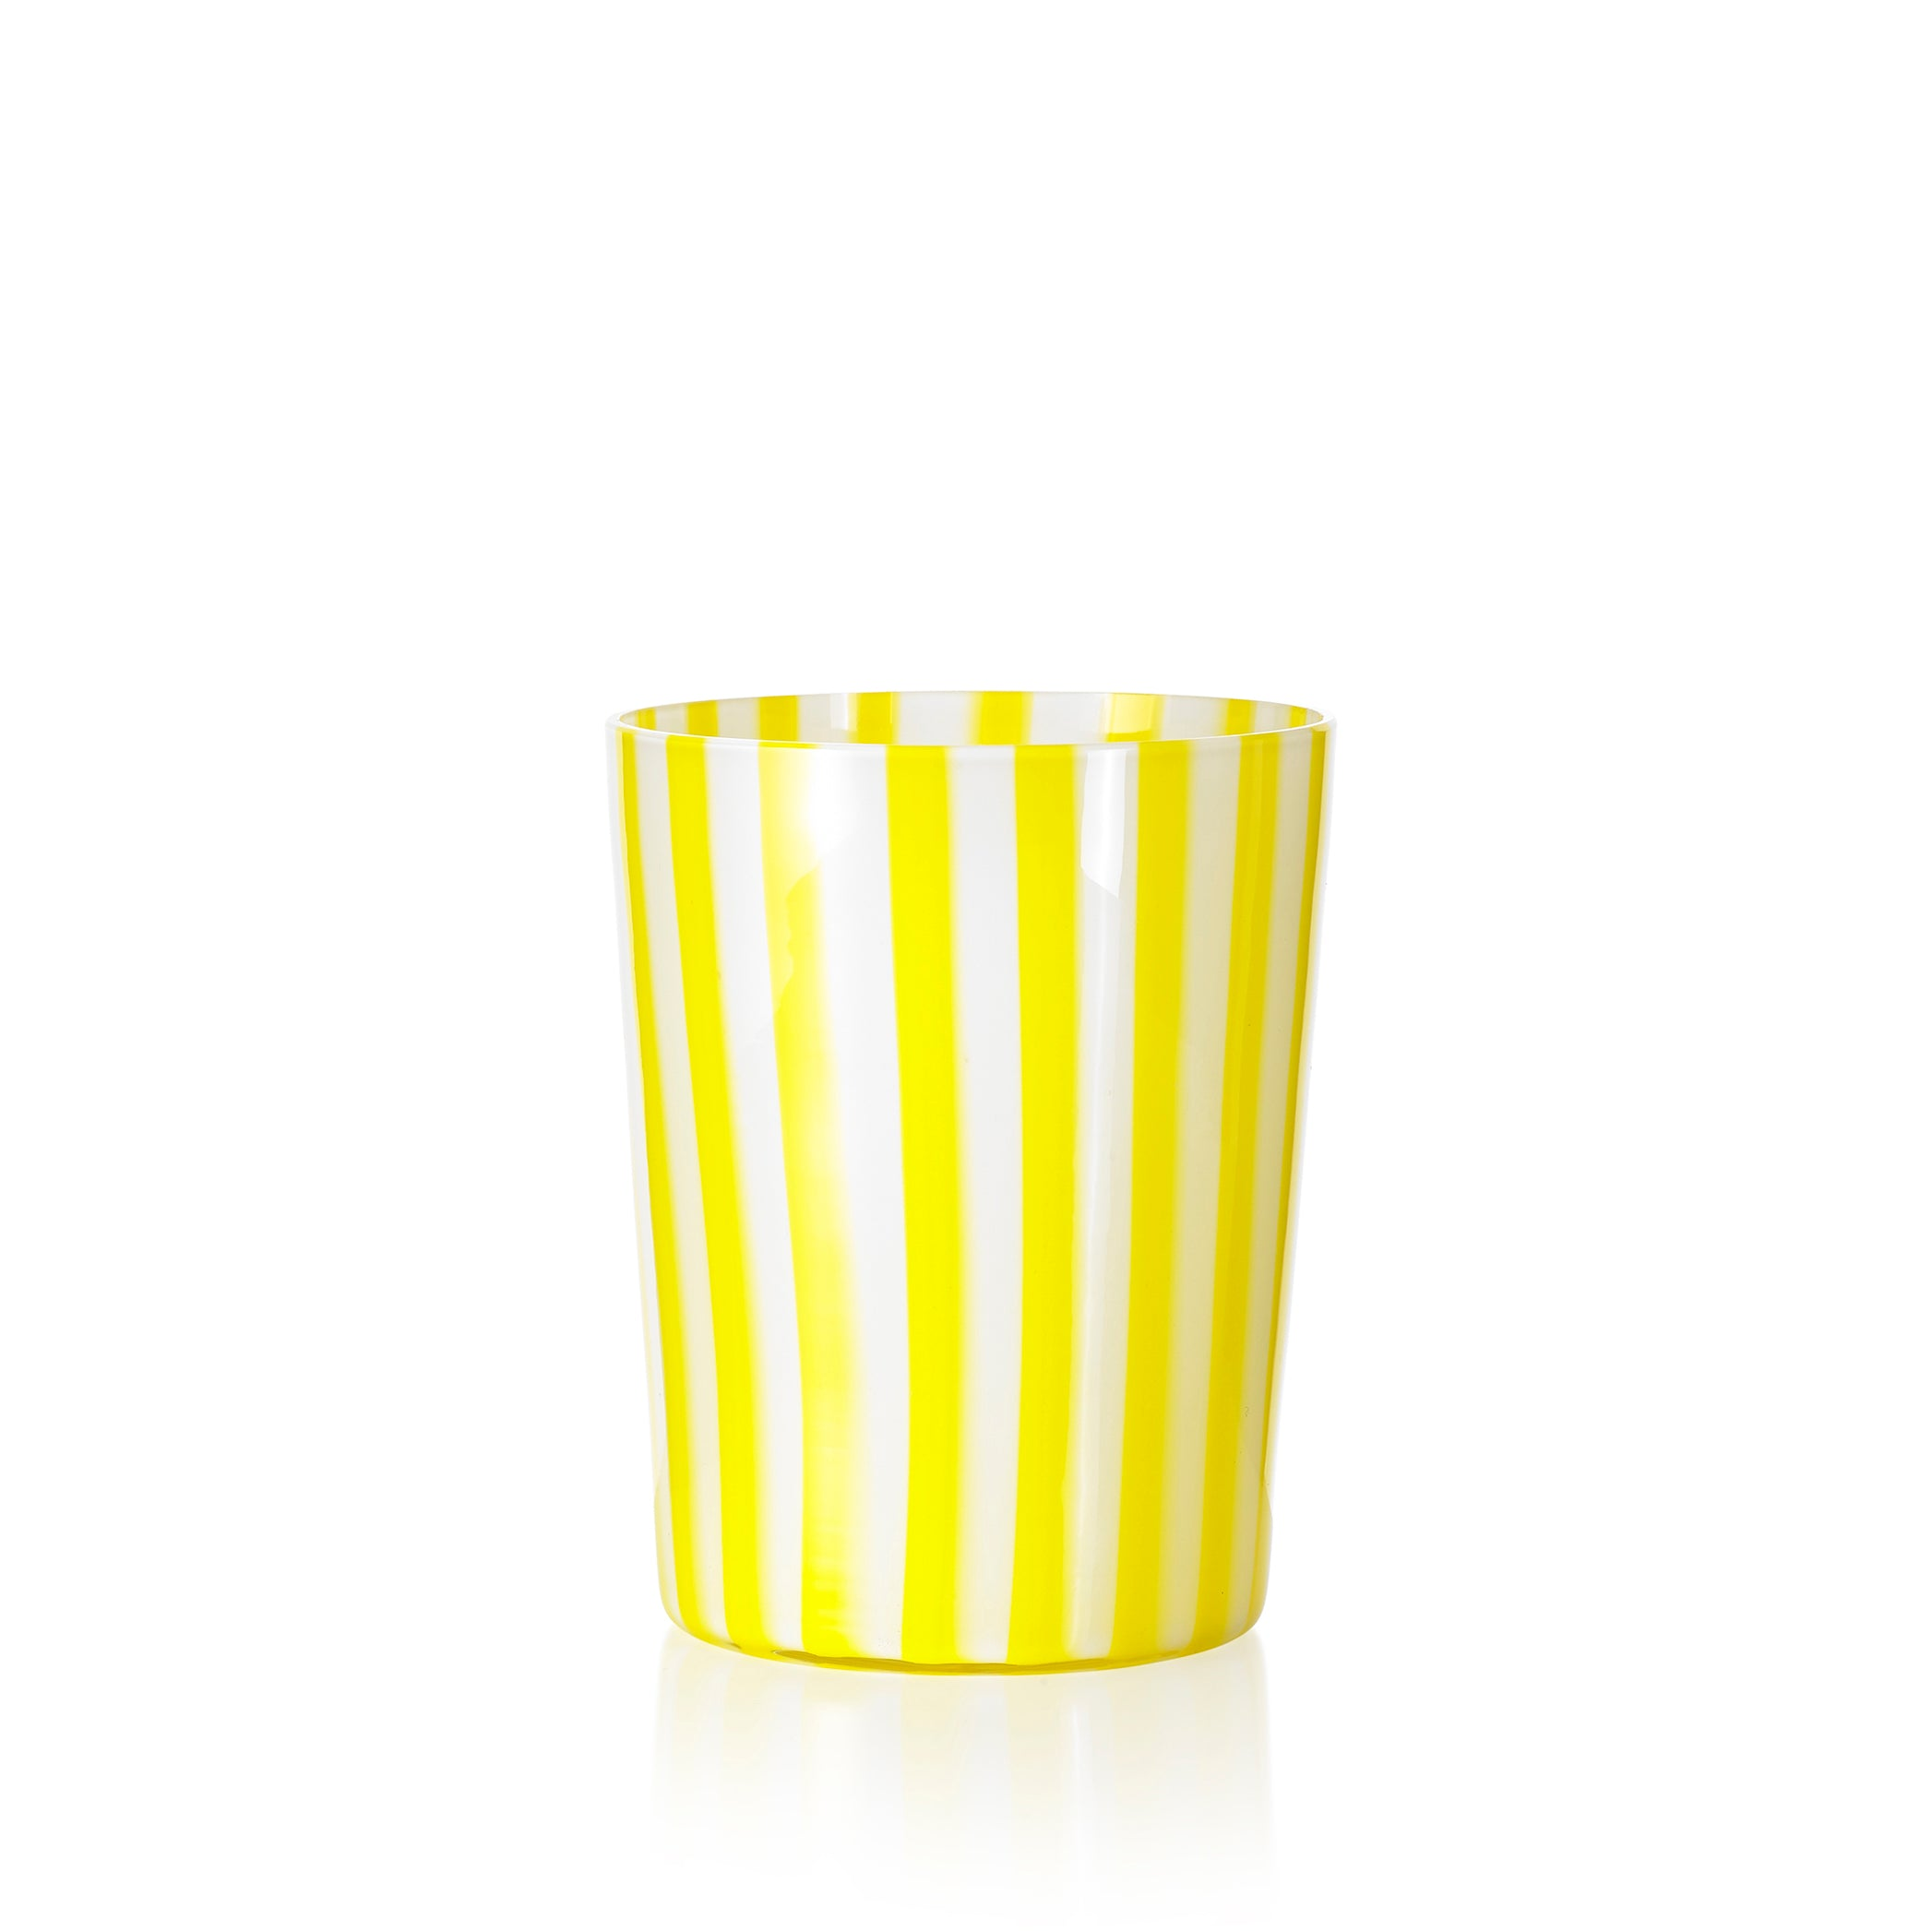 Set of Six Handblown 'Pastelli' Glass Tumblers, Designed by LPWK in Yellow and White Stripe